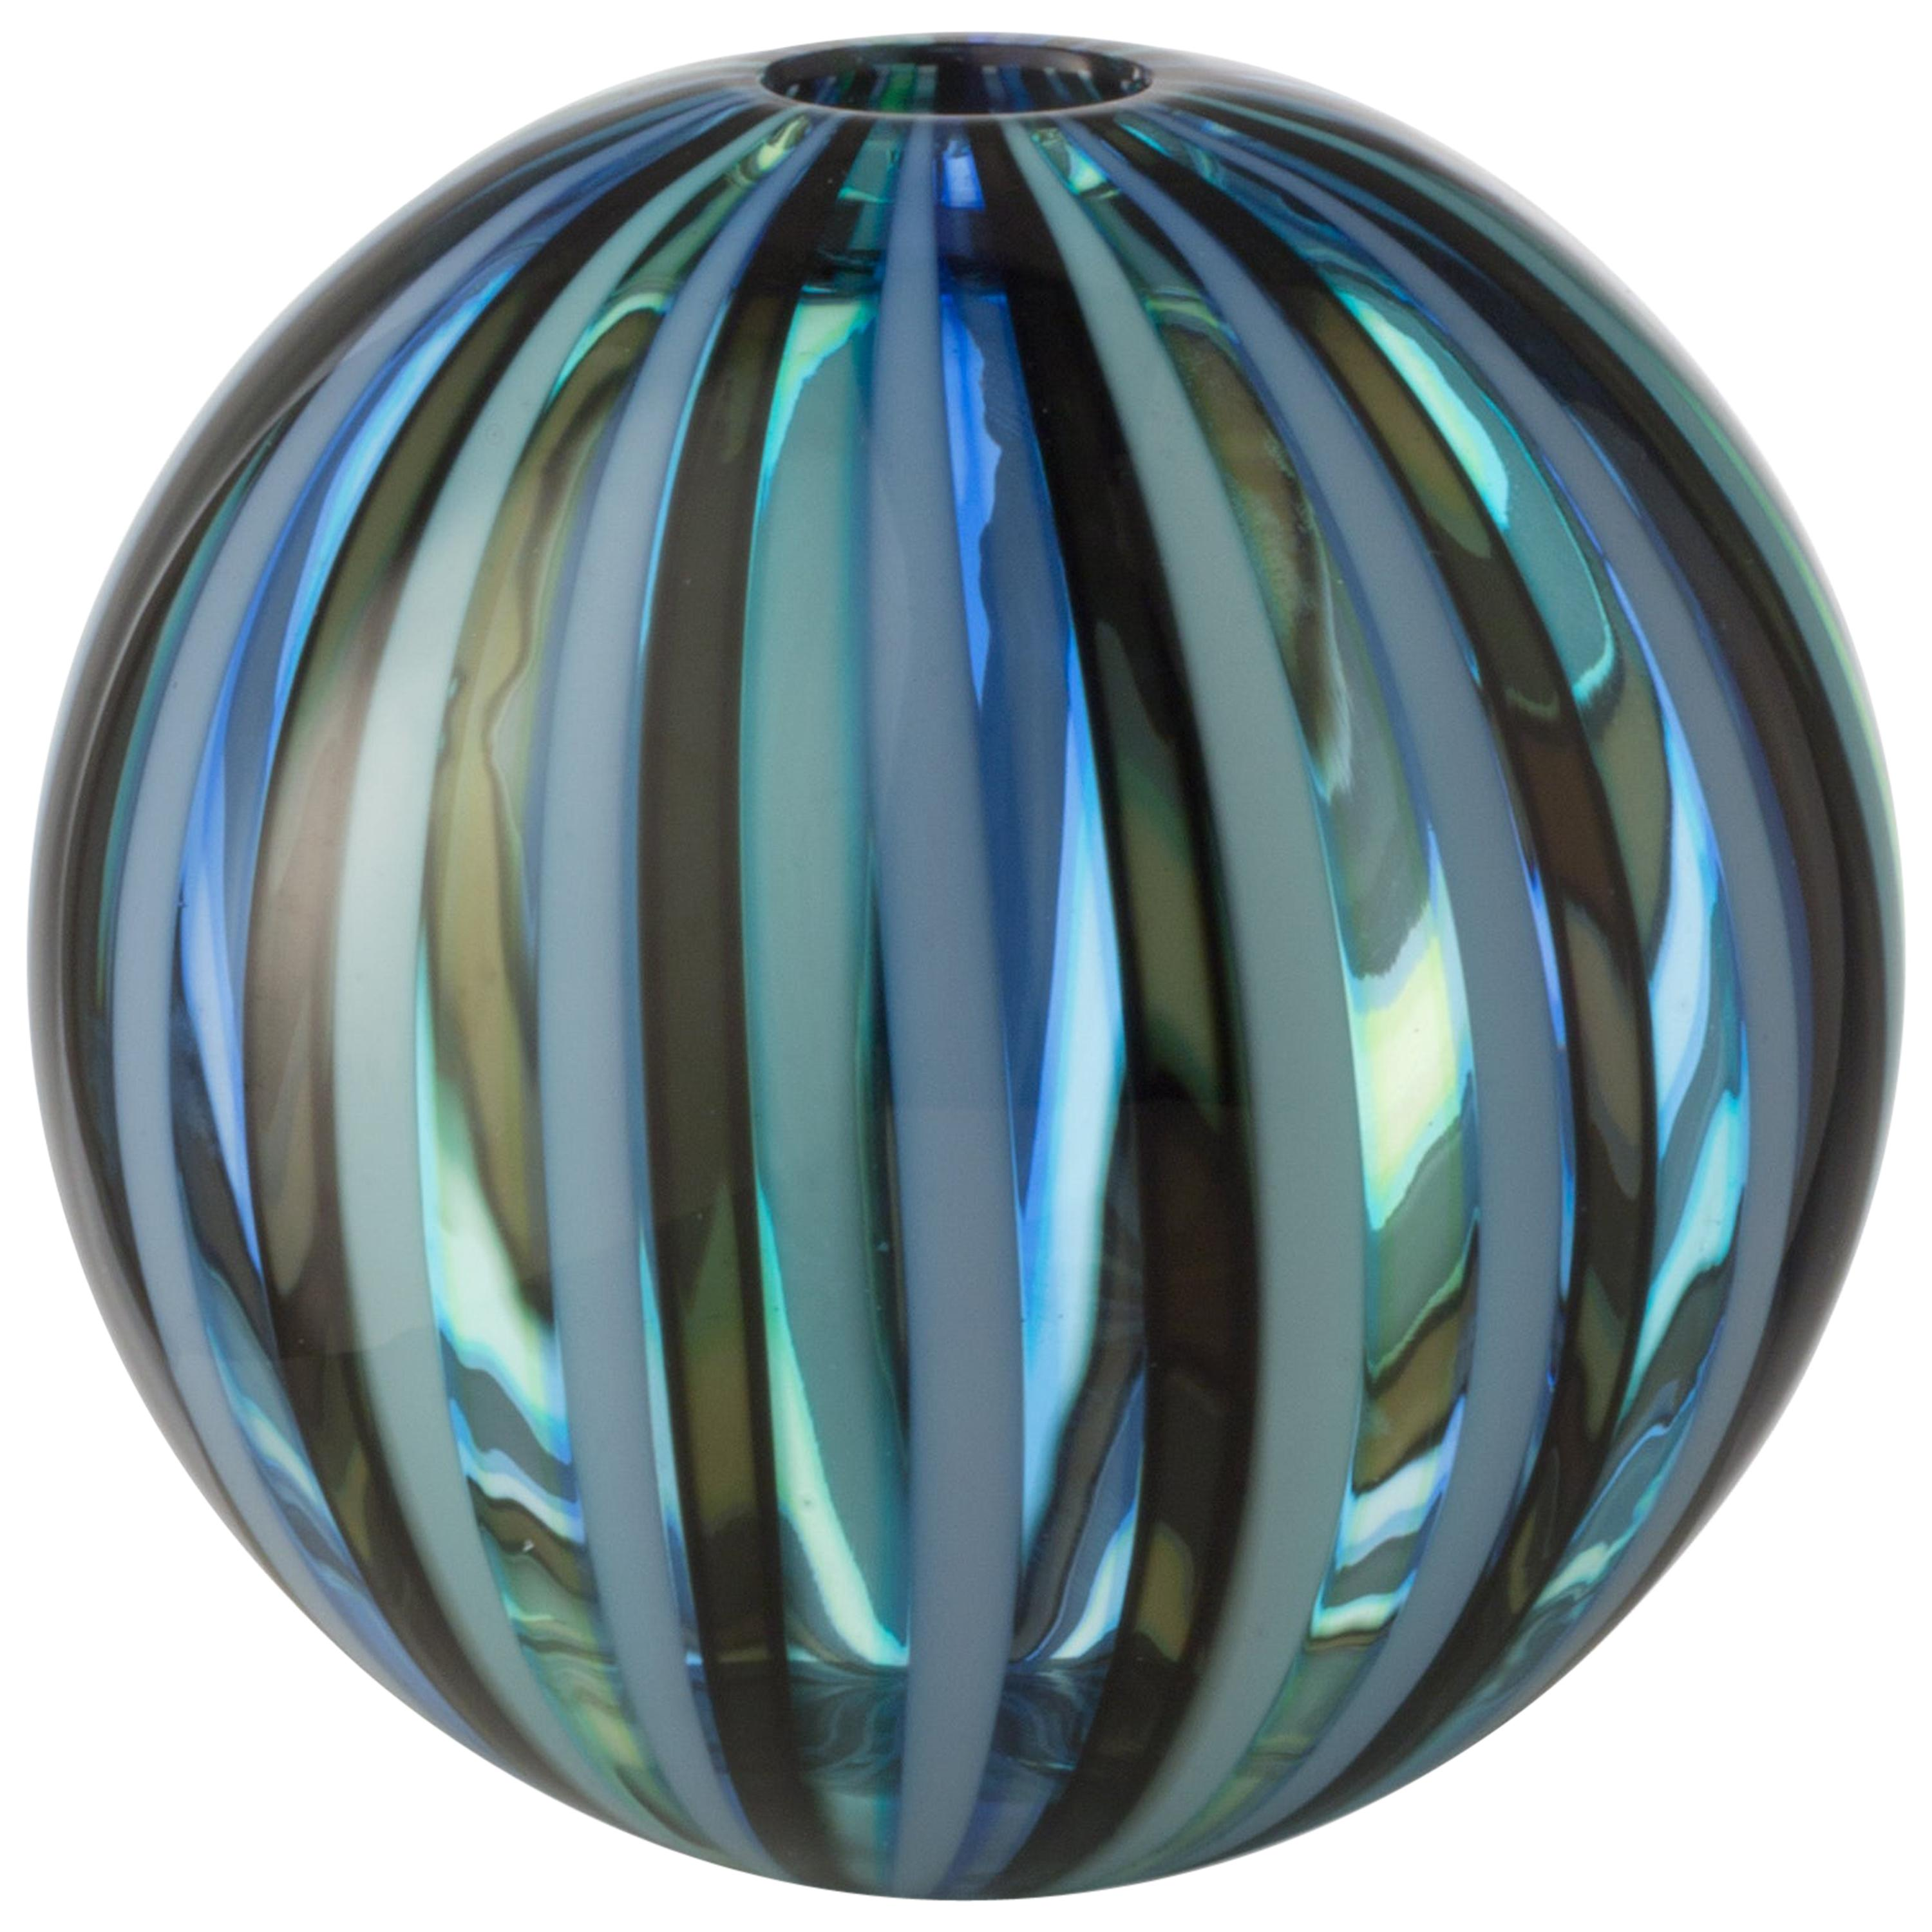 Small Perles 2 Vase in Hand Blown Murano Glass by Salviati